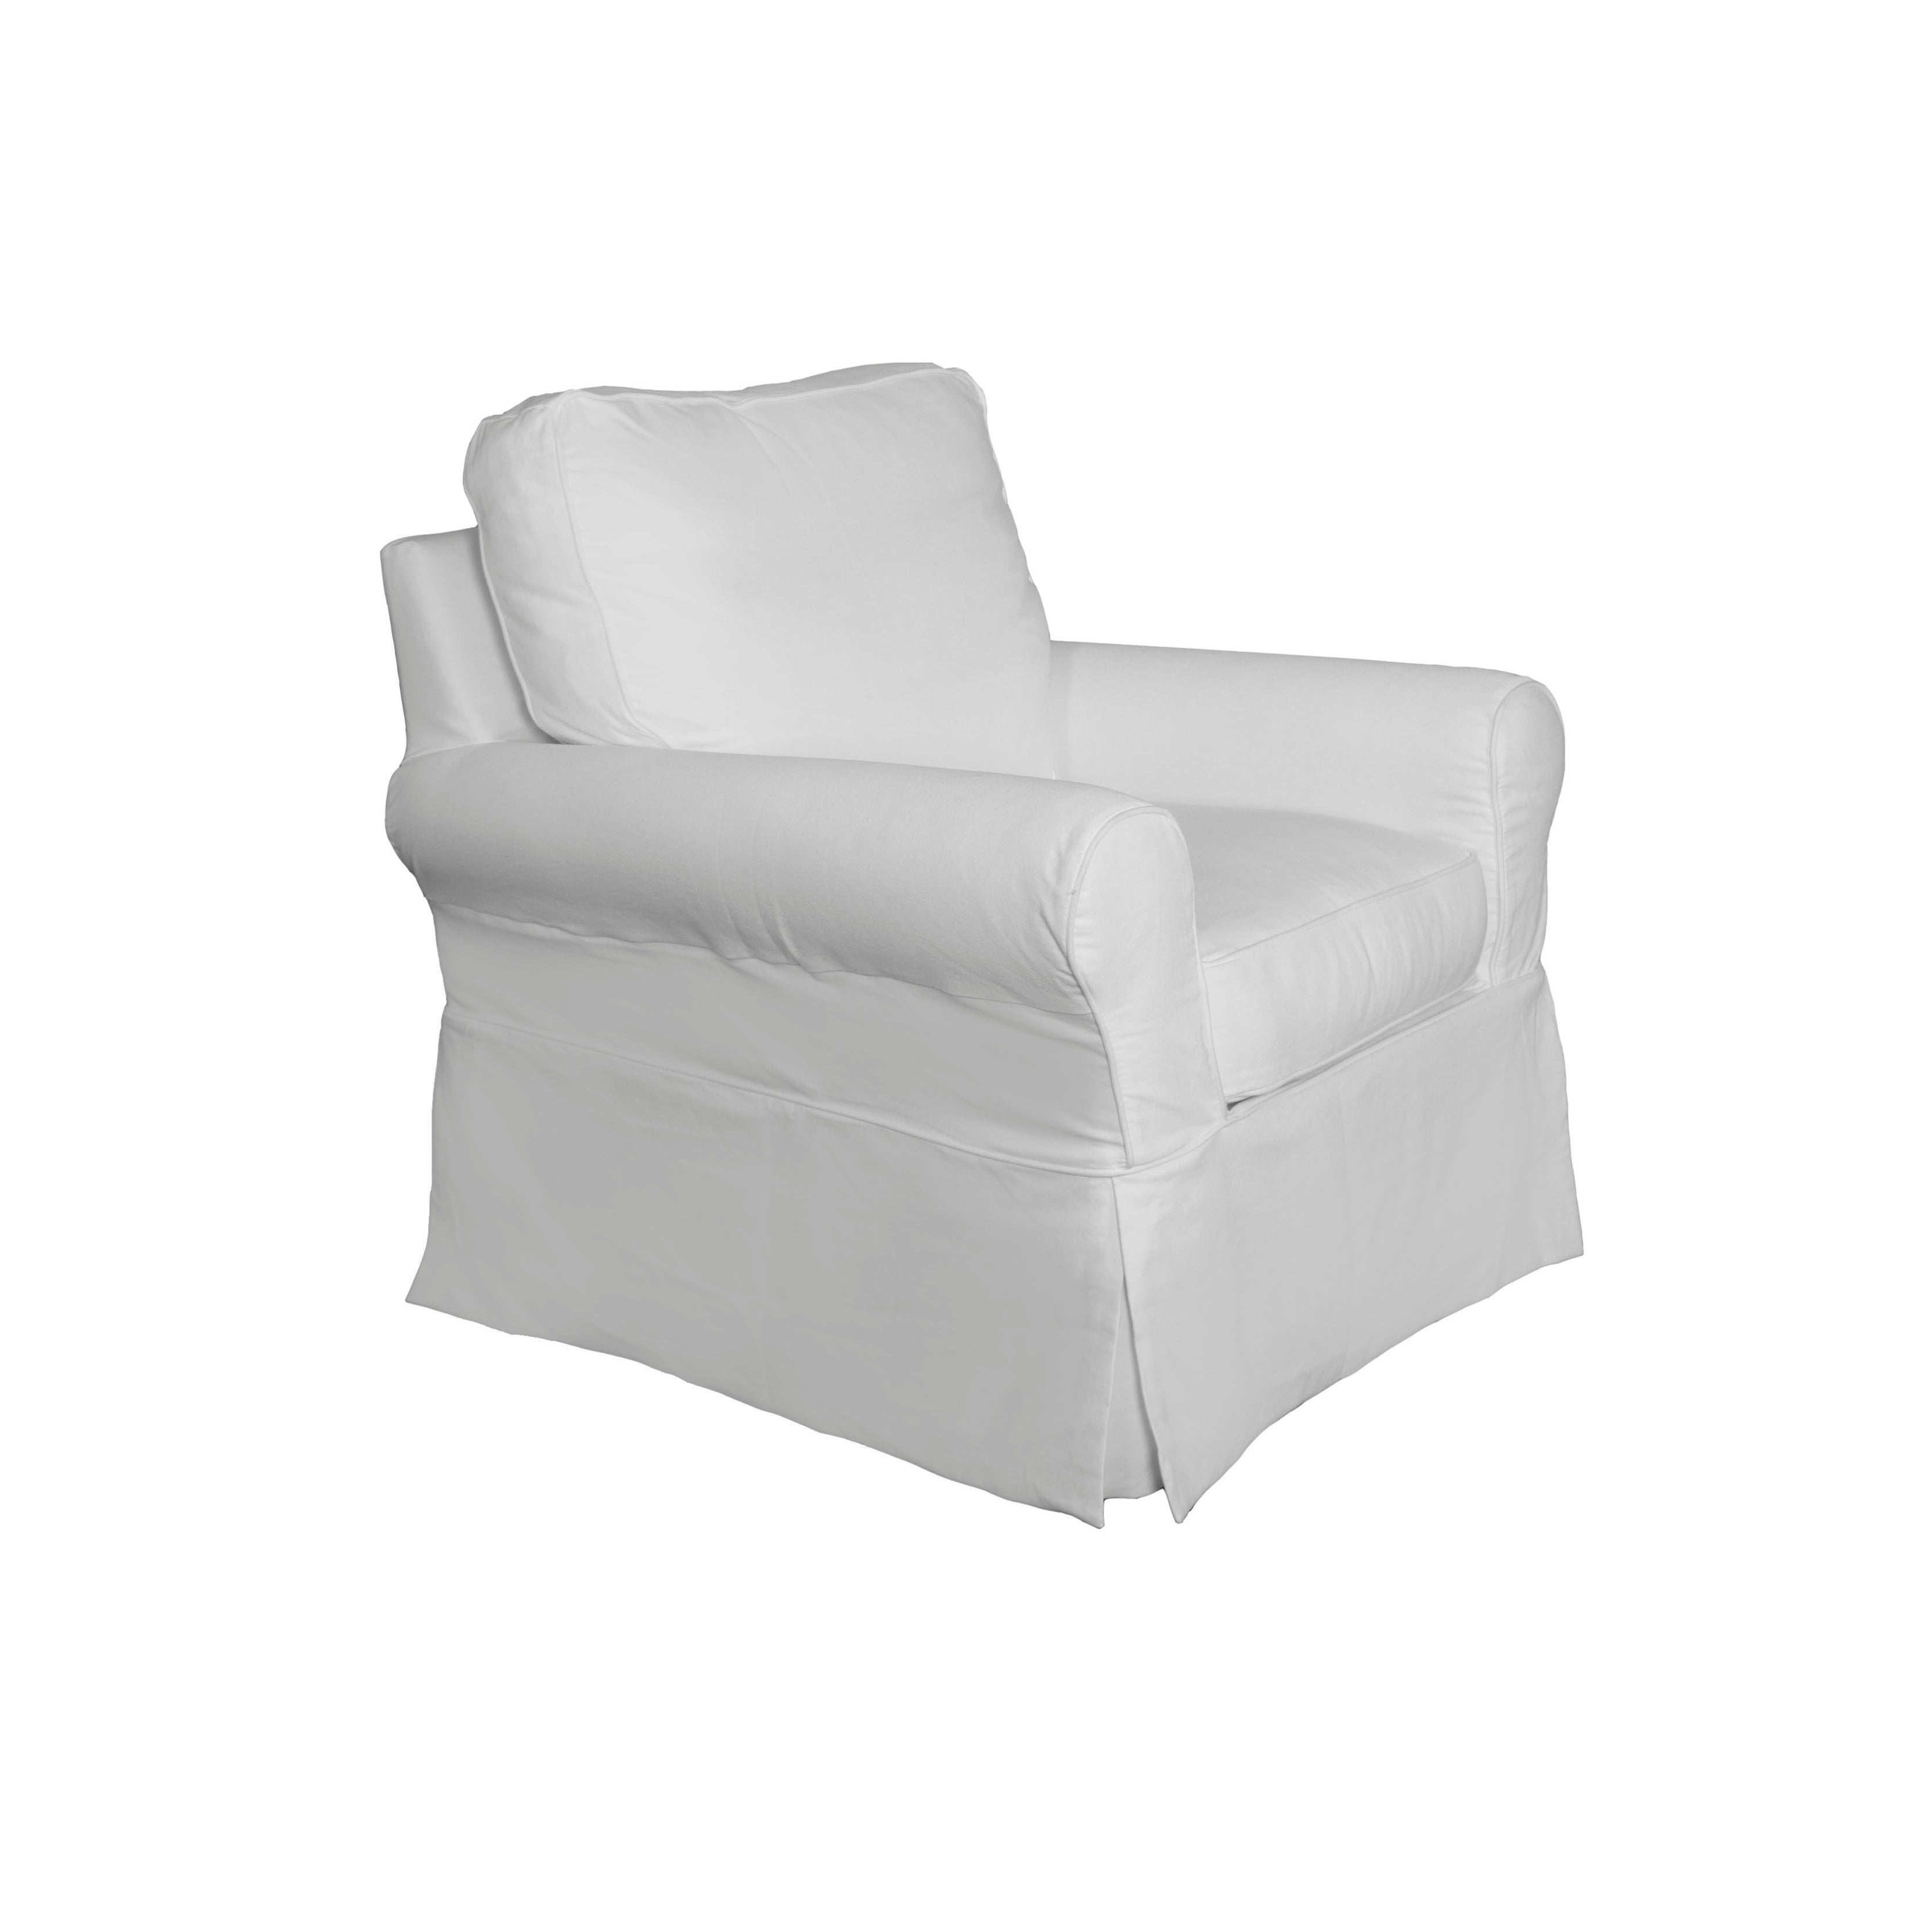 Marvelous Sunset Trading Horizon Box Cushion Chair And Ottoman Slipcover Set Performance White Covers Only Lamtechconsult Wood Chair Design Ideas Lamtechconsultcom